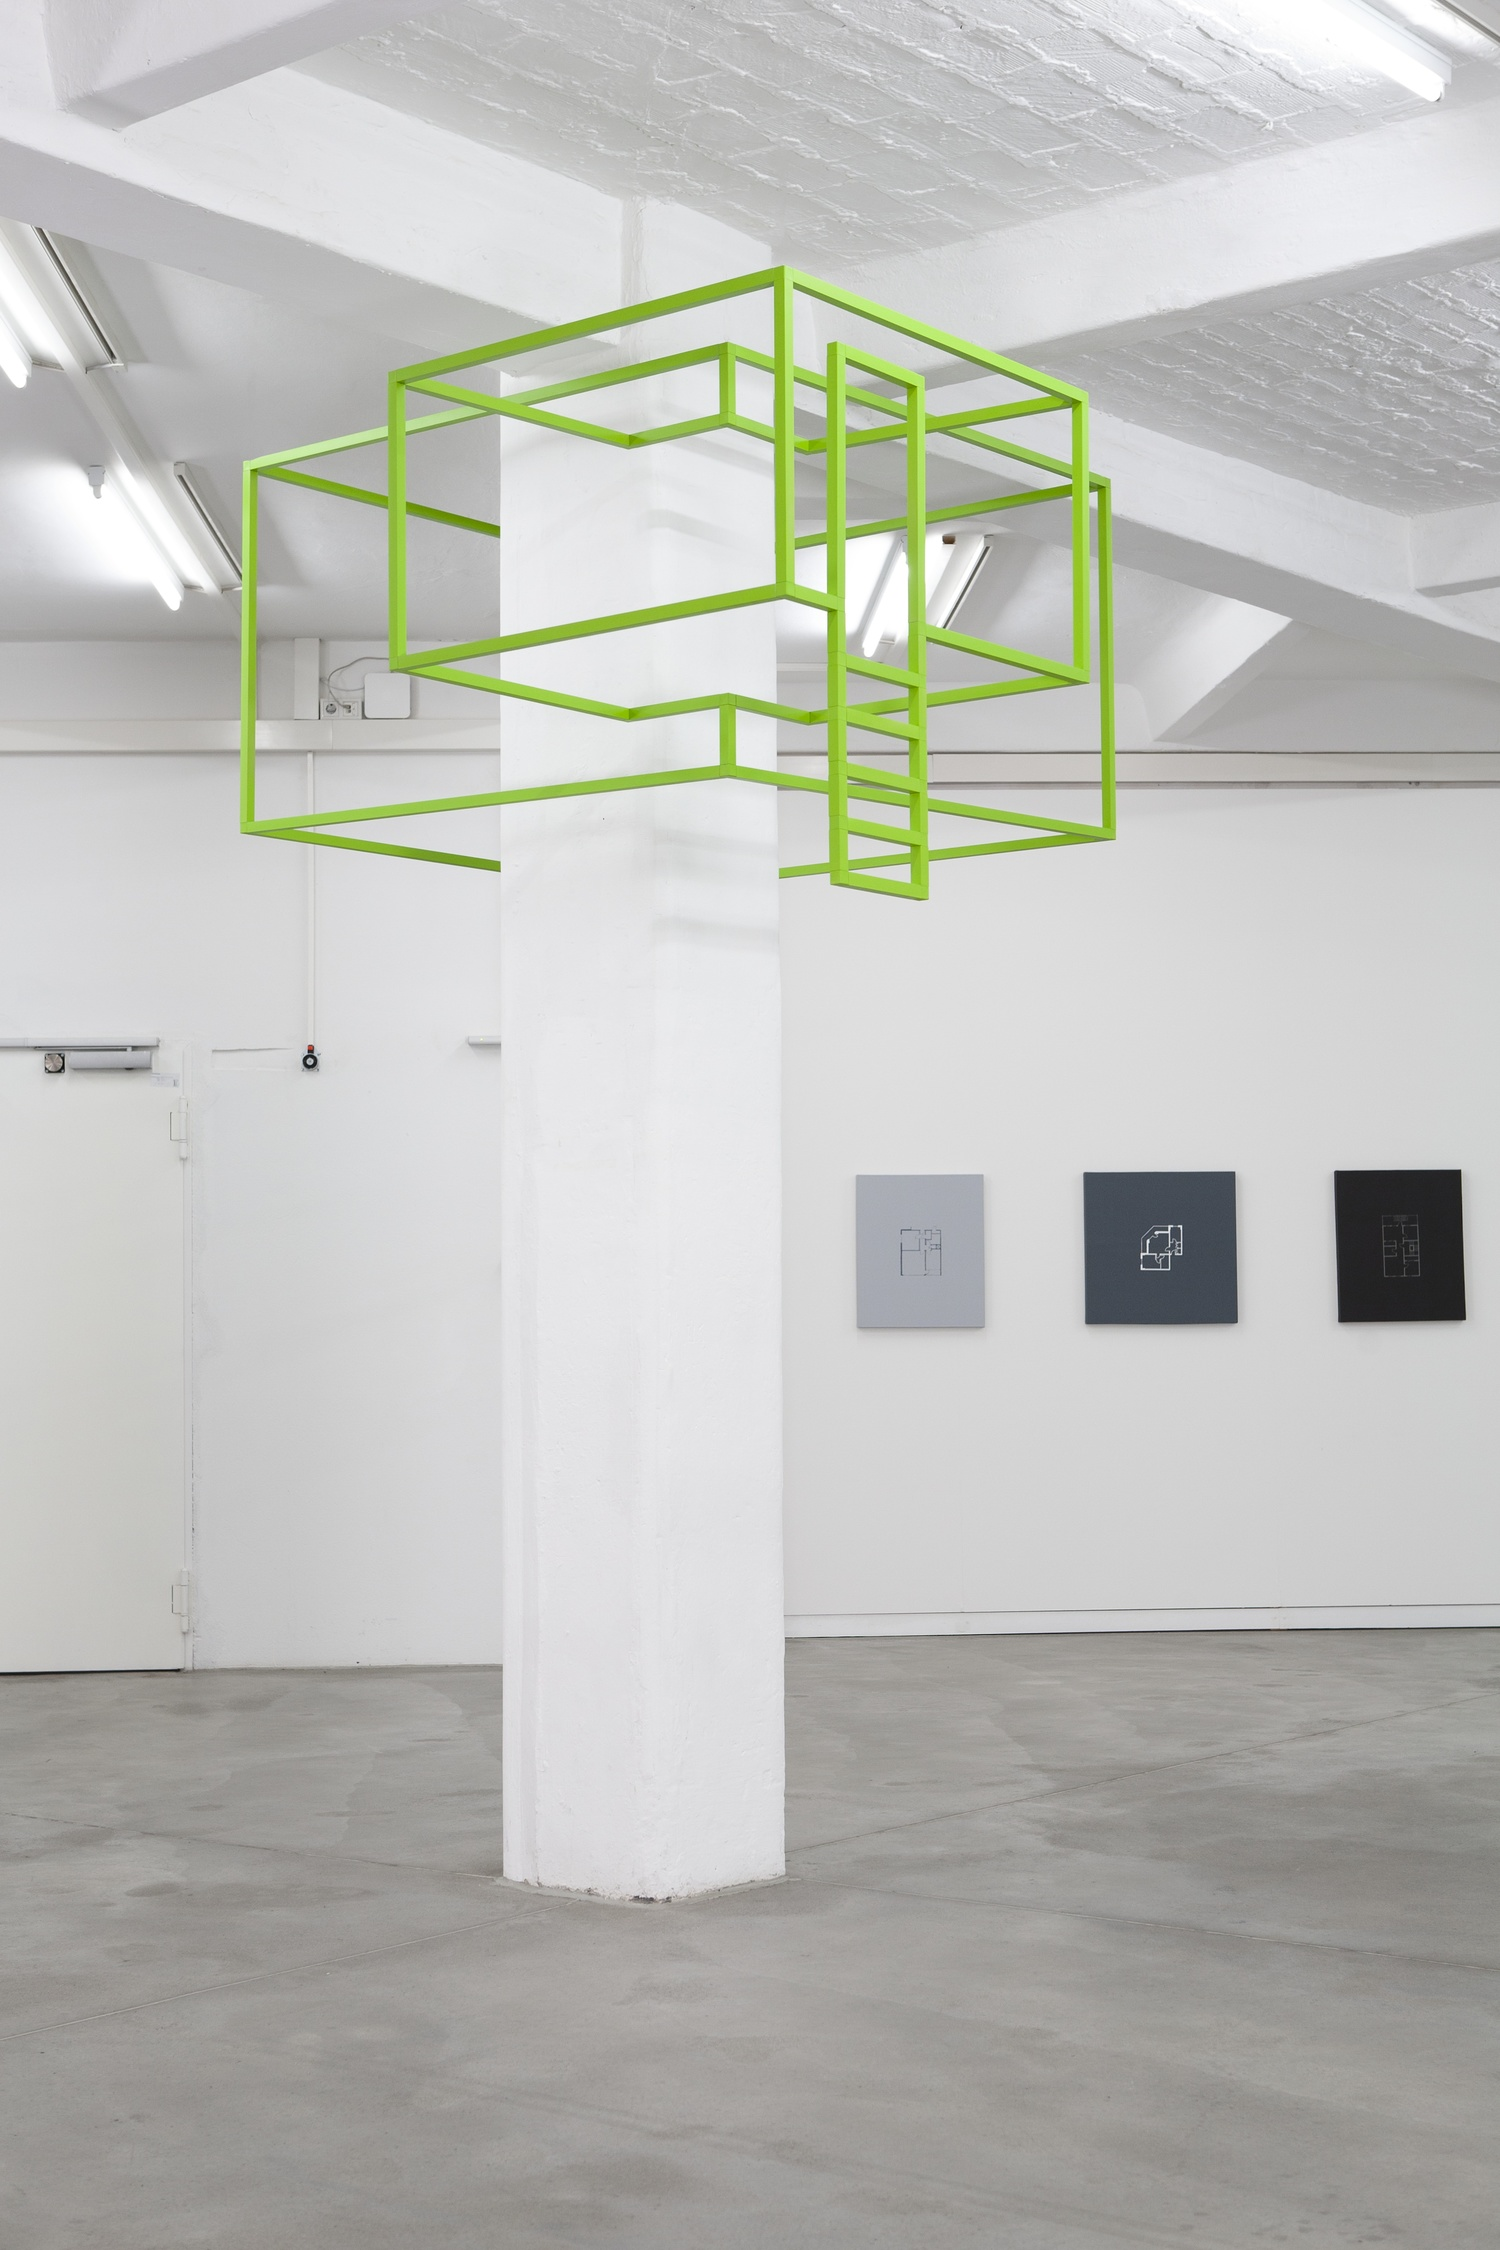 """Installation view at """"Some Detours: Michael Lee"""", 2013,Künstlerhaus Bethanien, Berlin, Germany: AROUND PILLAR: Michael Lee, Skeletal Retreat No. 1, 2013, emulsion and aluminium hollow section, 125 x 230 x 235 cm, Ed. 1 / 3 + 1 AP; ON WALL: Michael Lee, selections from the series """"Dwelling"""", 2013, acrylic on canvas, various dimensions, photos by Ute Klein."""